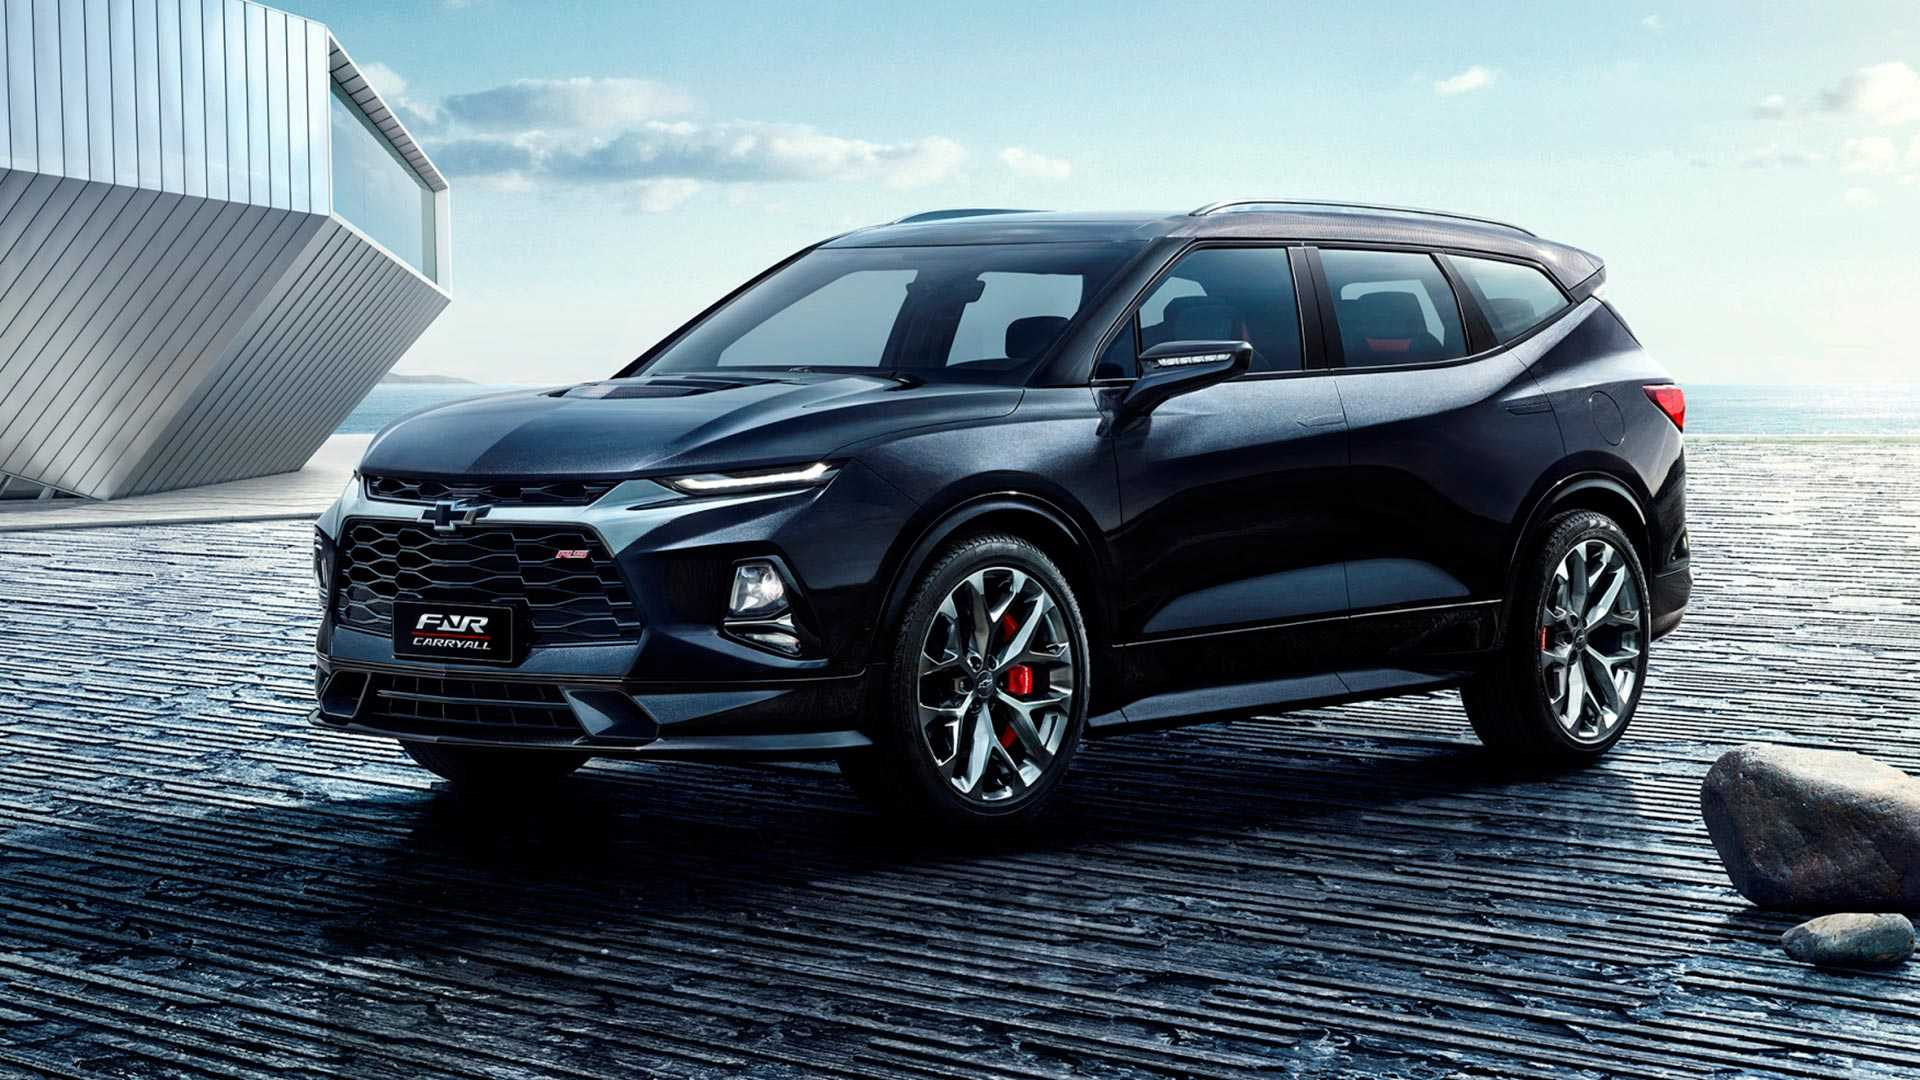 Chevy Fnr Carry All Concept Previews Shape Of Future Bowtie Suvs